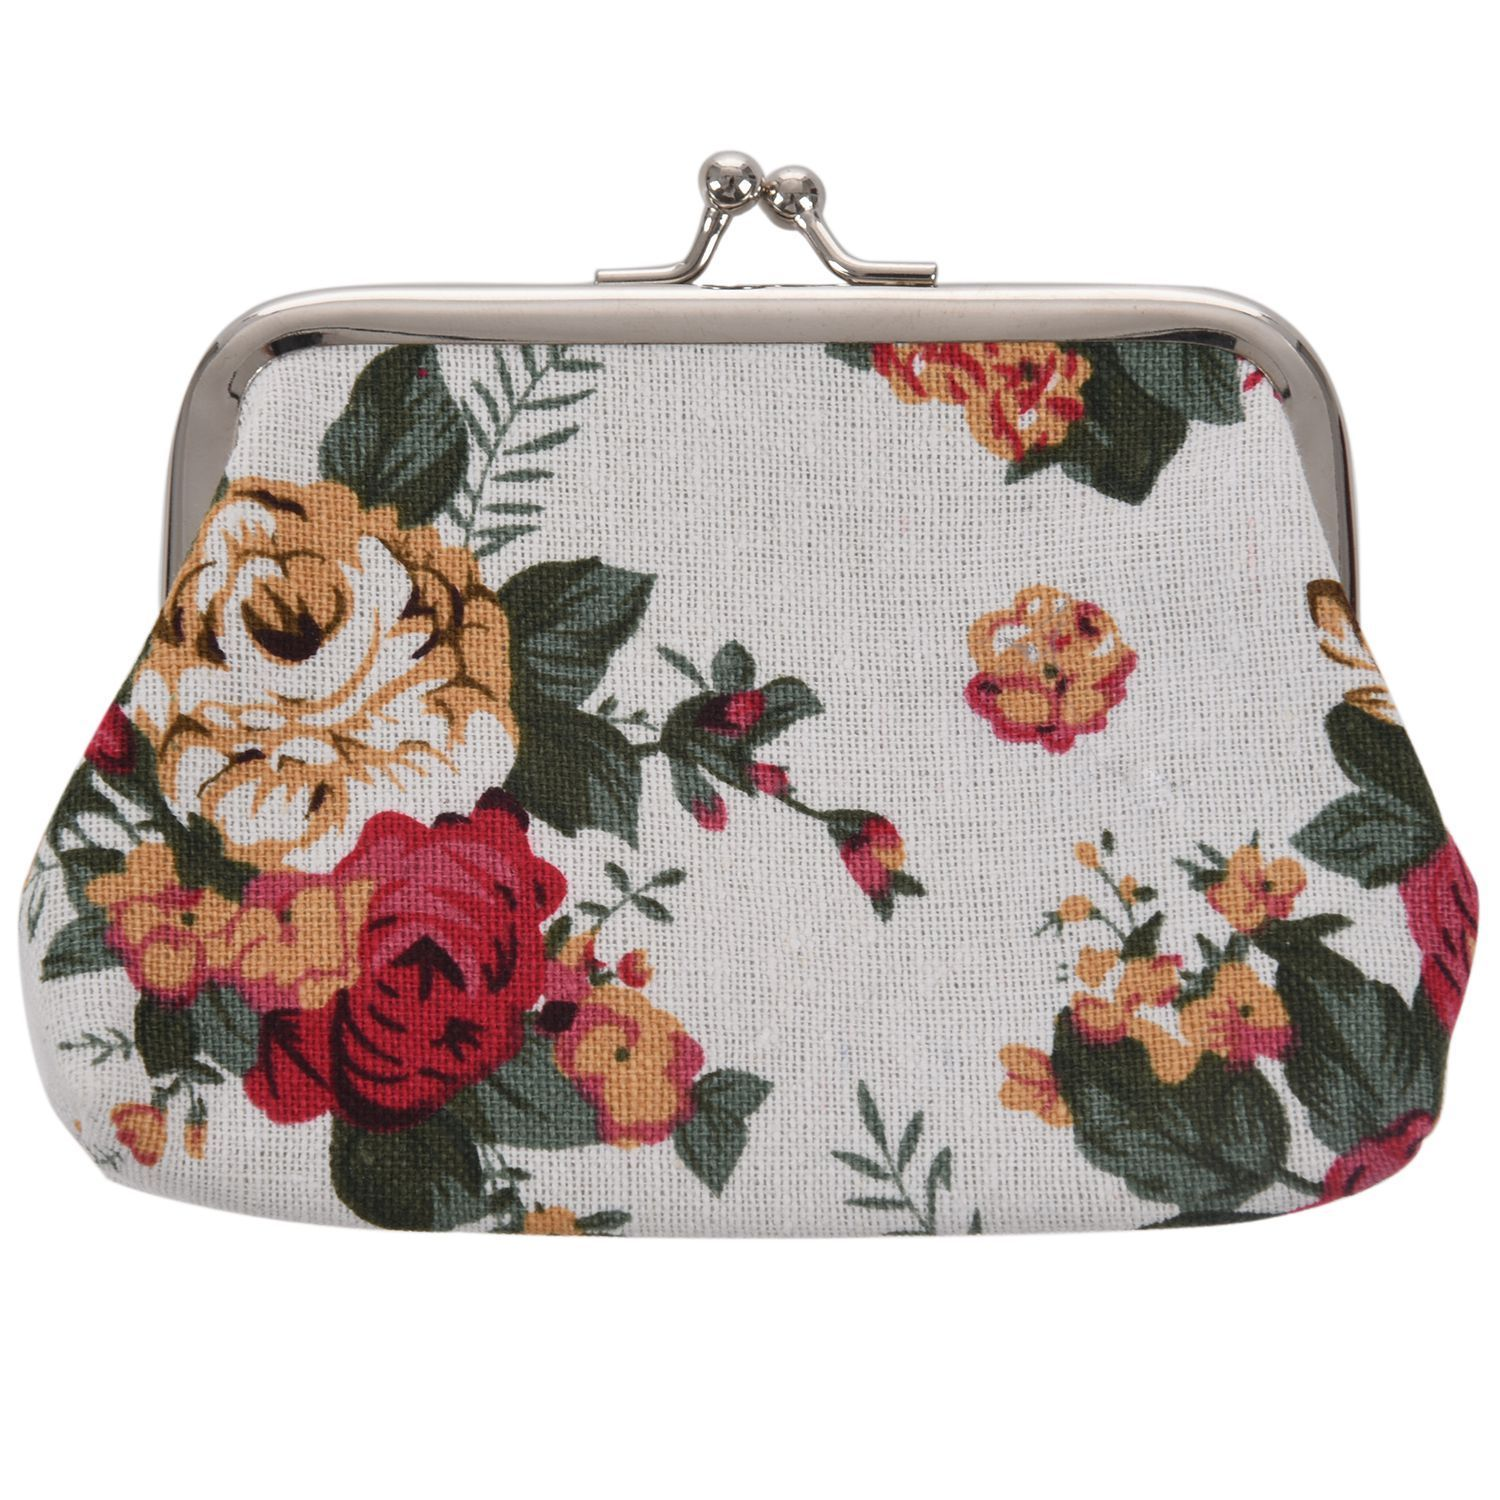 FGGS-Latest Women Girl Retro Rose Flowers Printed Hasp Canvas Coin Purse Wallets Buckle Pouch Mini Bag Gift Super Hero